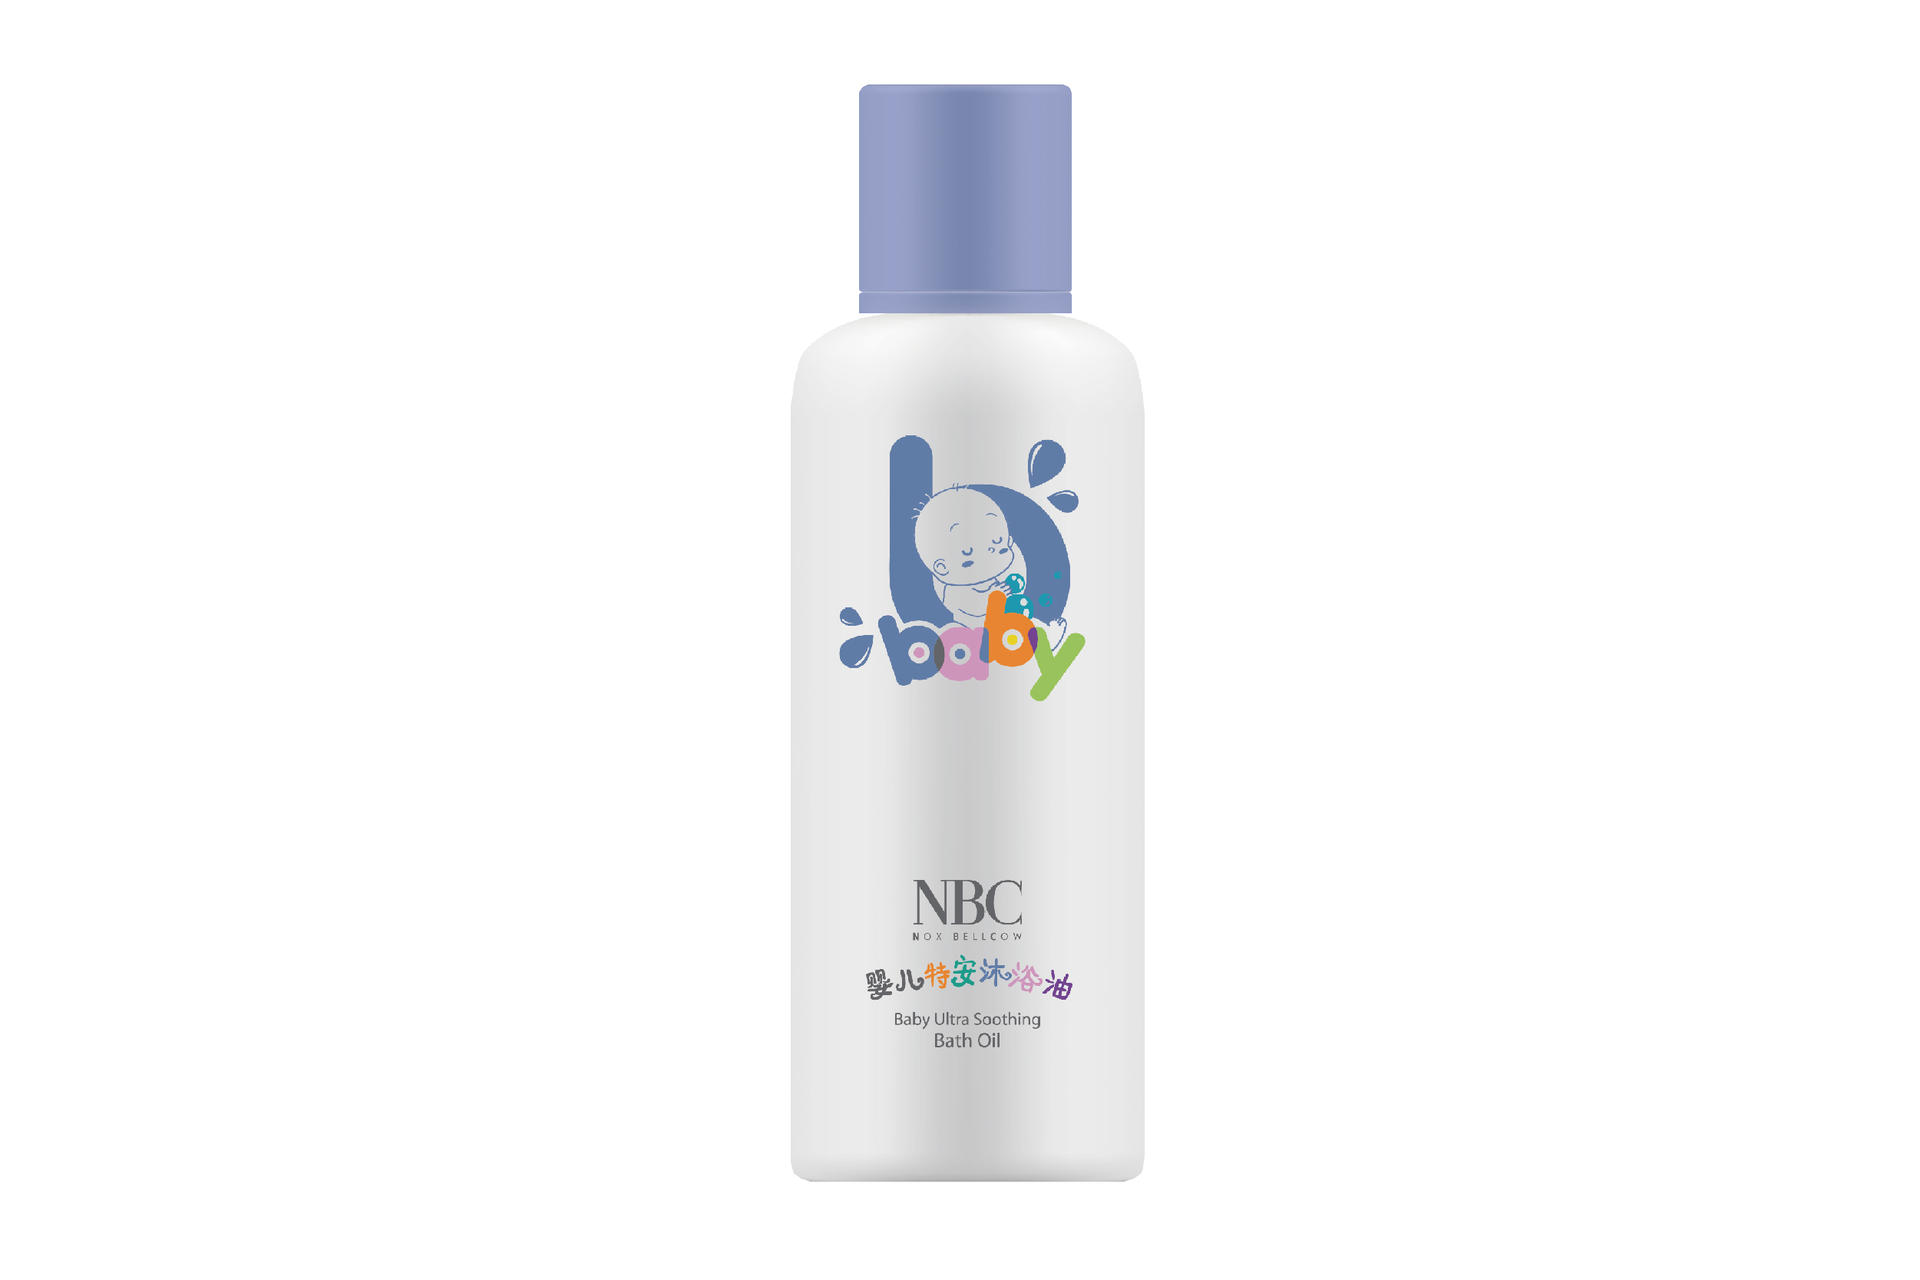 Baby Ultra Soothing Bath Oil